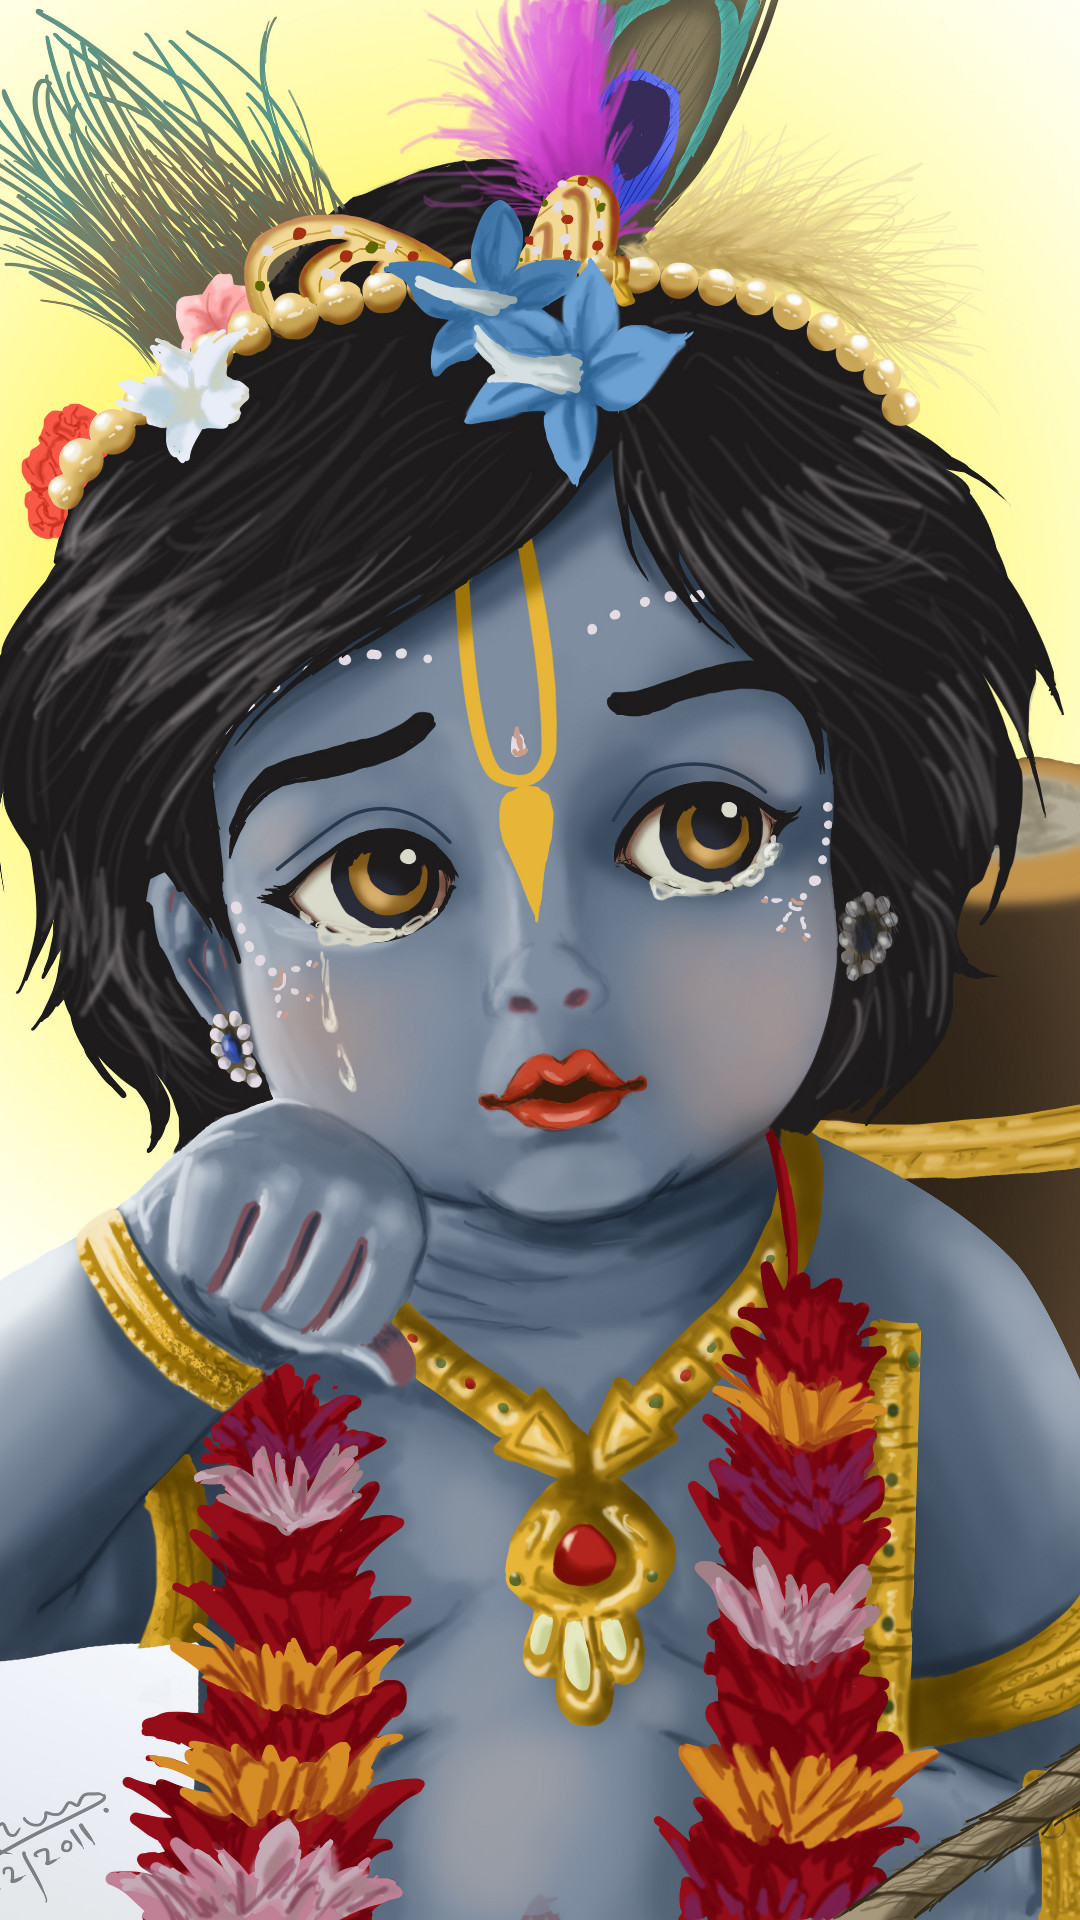 729167 krishna wallpapers 1080x1920 for samsung